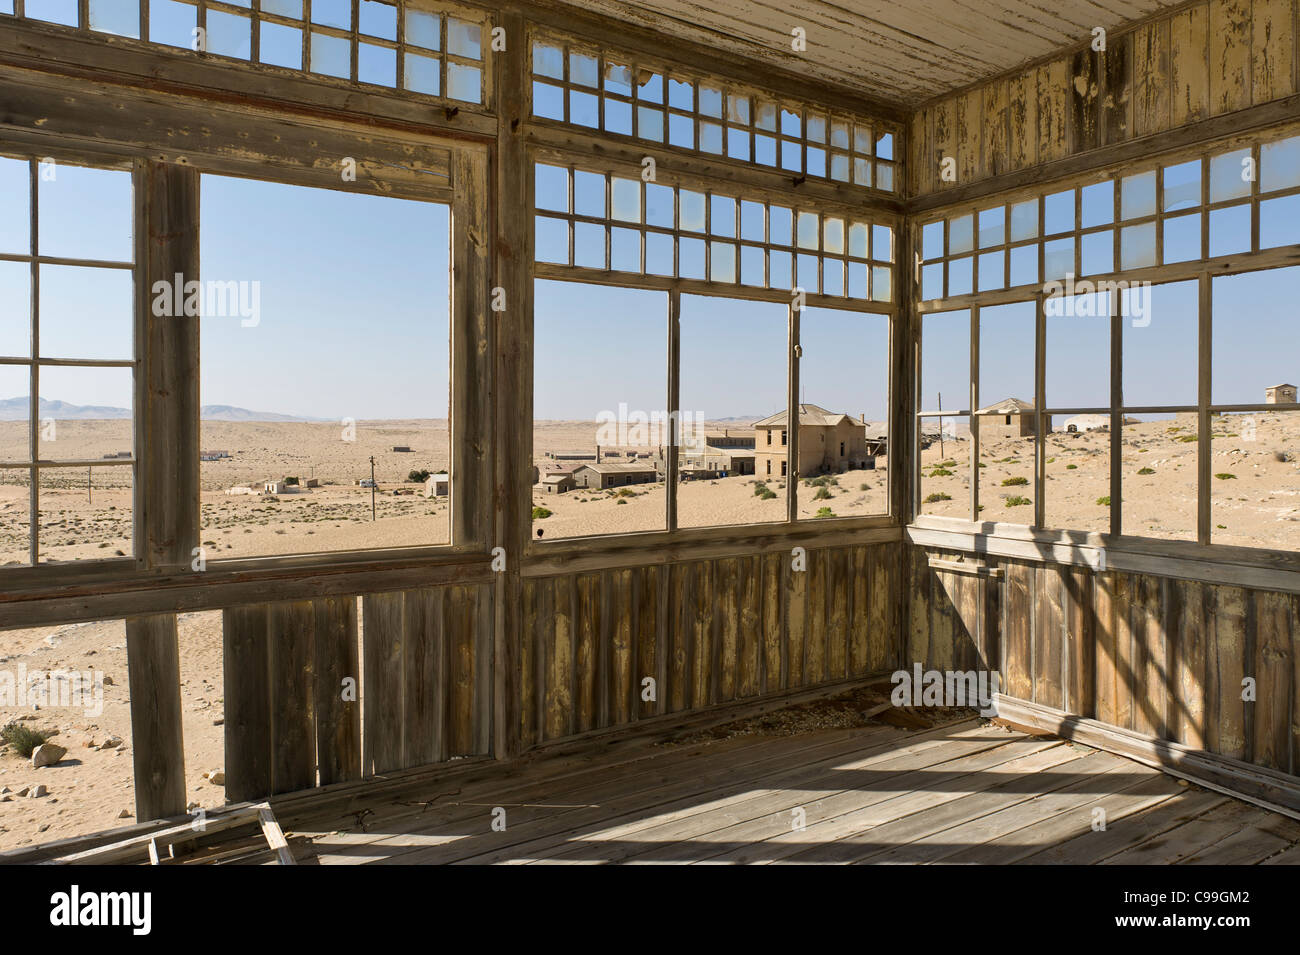 View from the veranda of an abandoned building in Kolmanskop a former diamond mine in Namibia - Stock Image